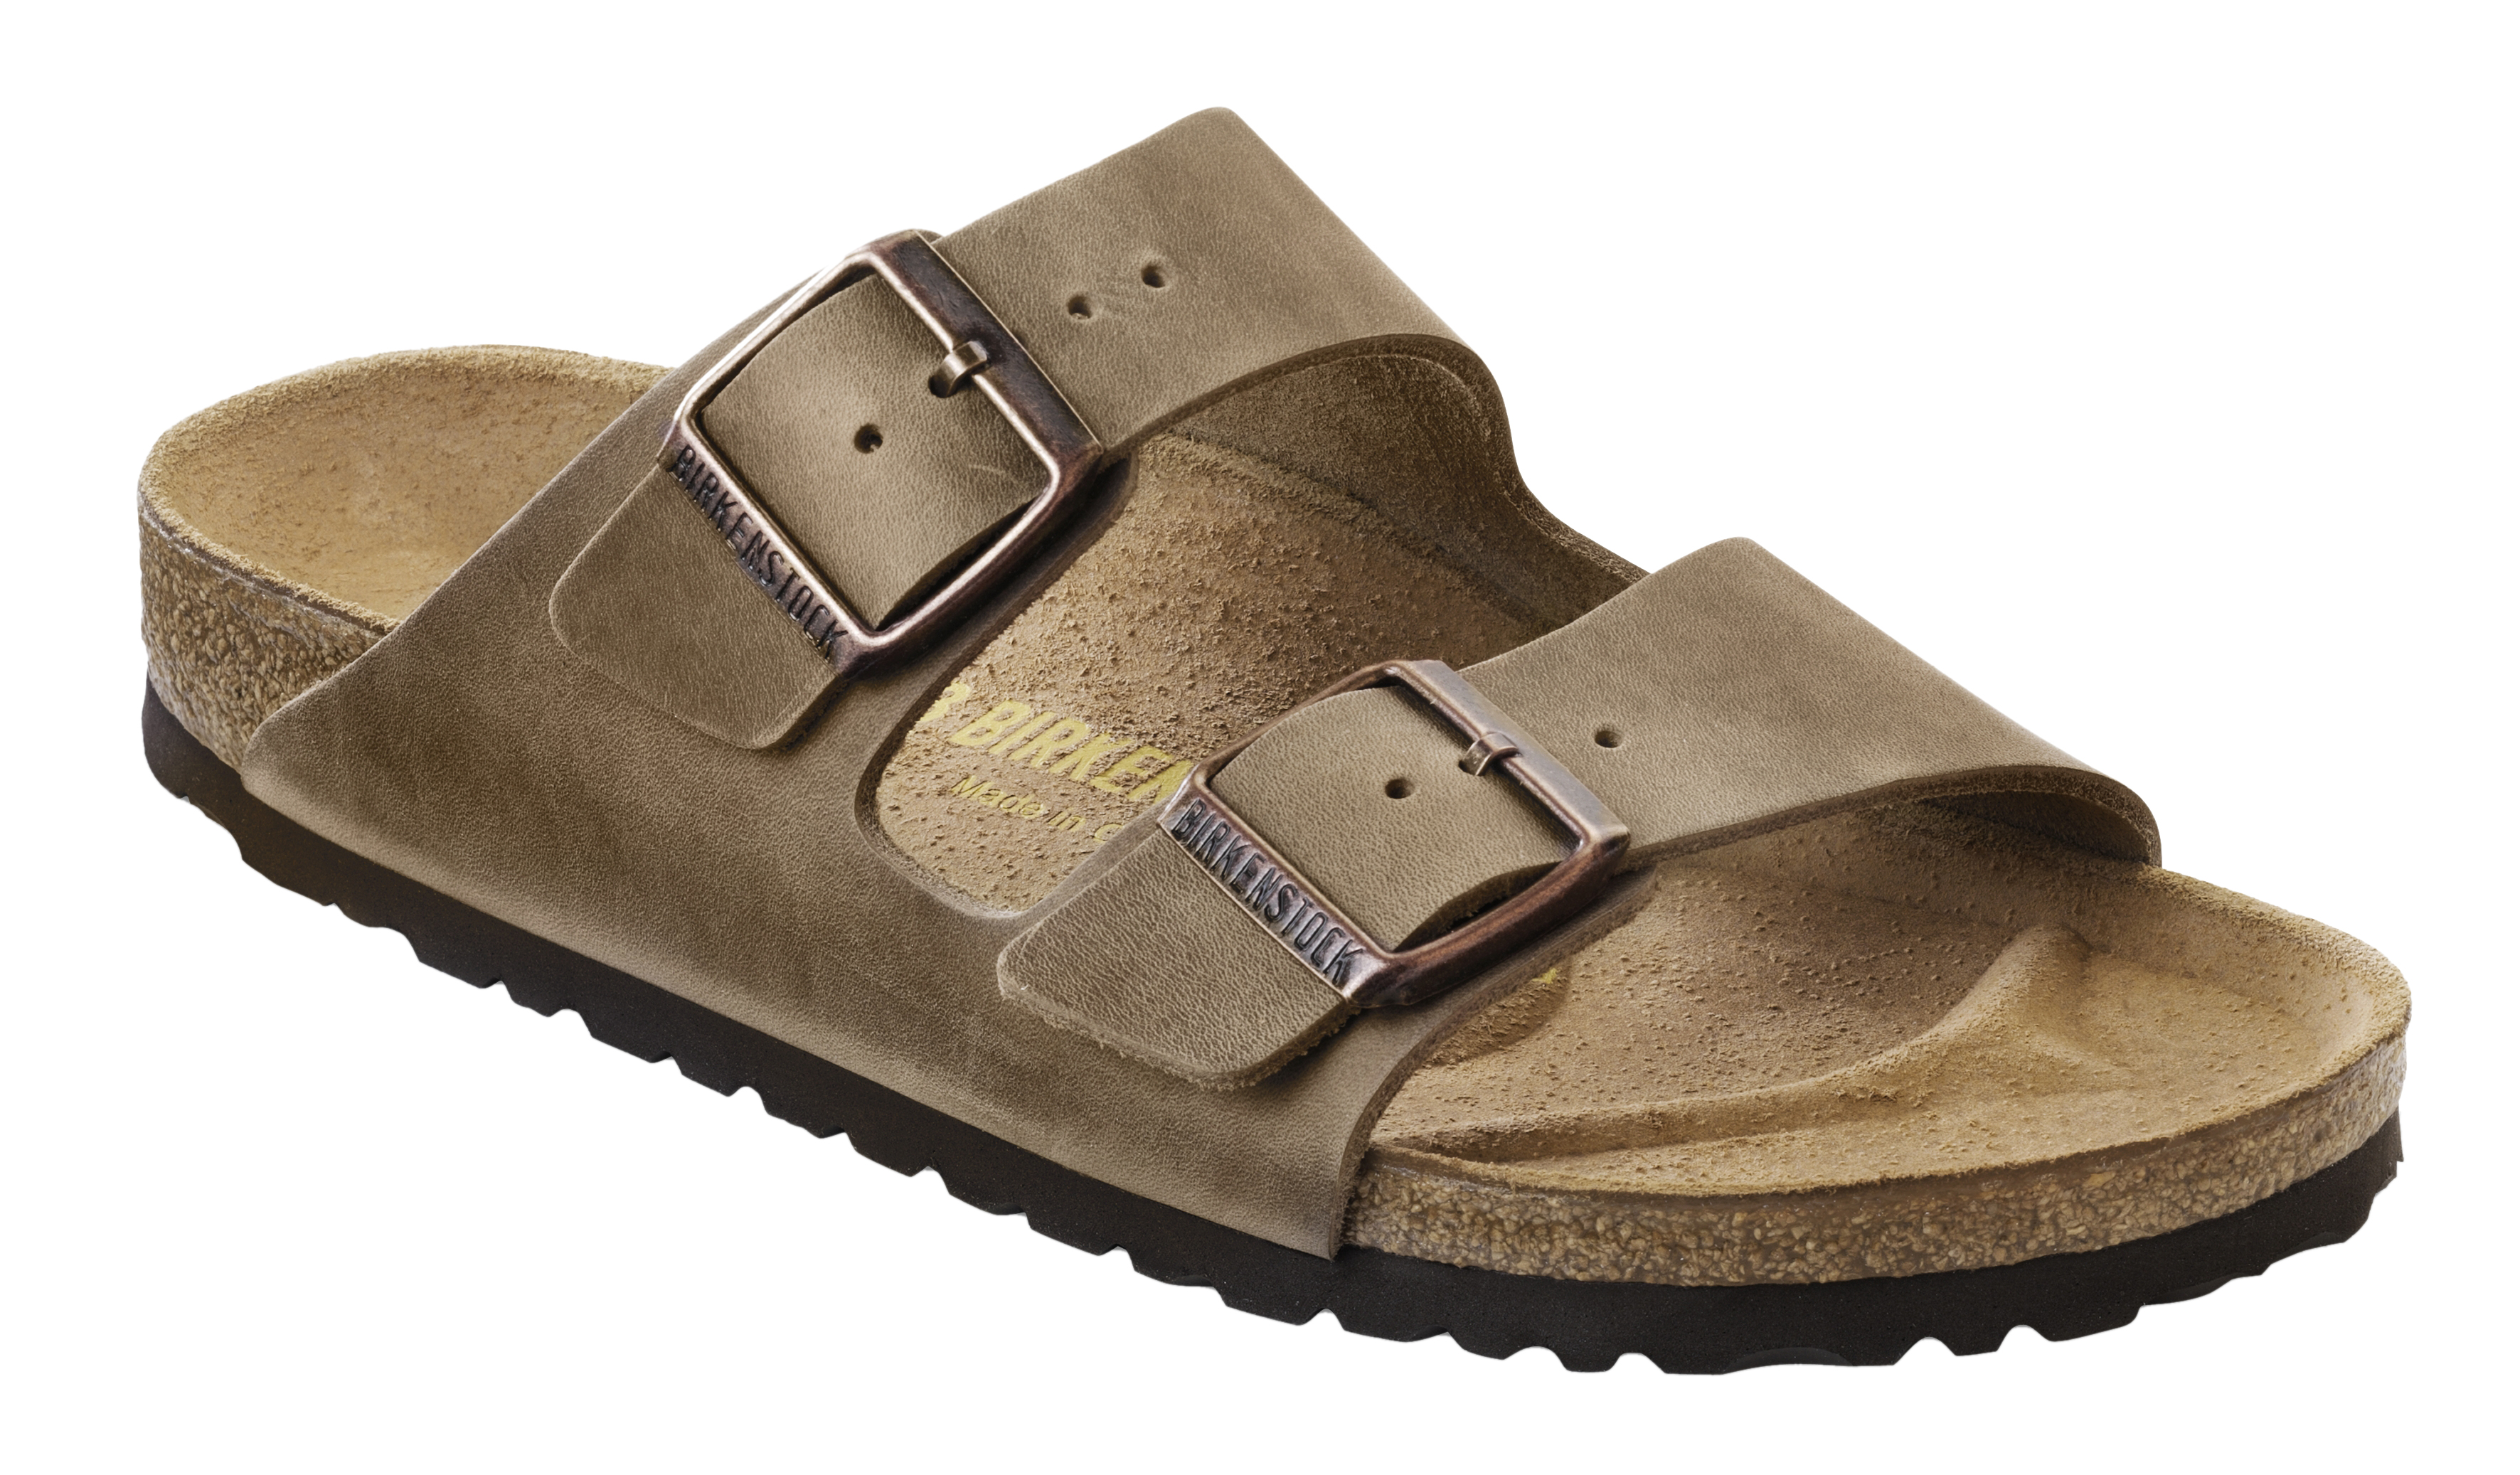 b6e10c9bdd6f Birkenstock Arizona Leather Sandals - Unisex